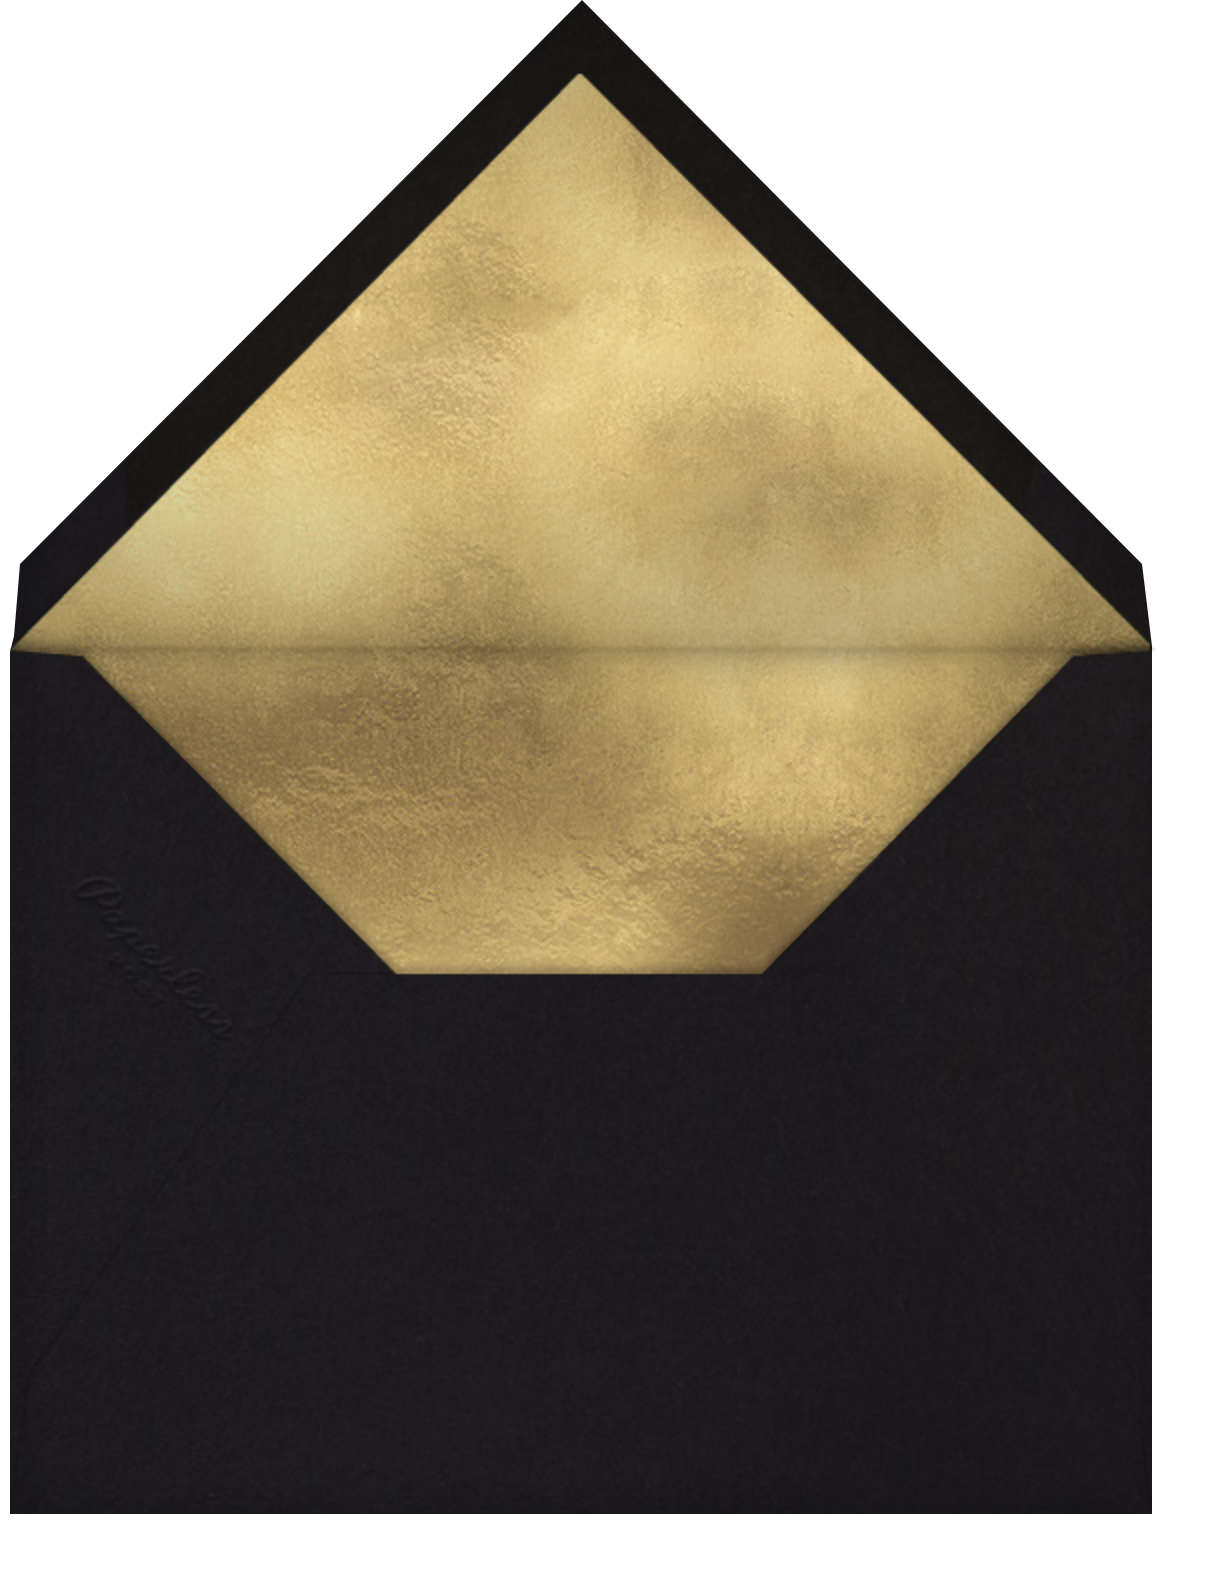 Fizzy - Black - Mr. Boddington's Studio - Save the date - envelope back